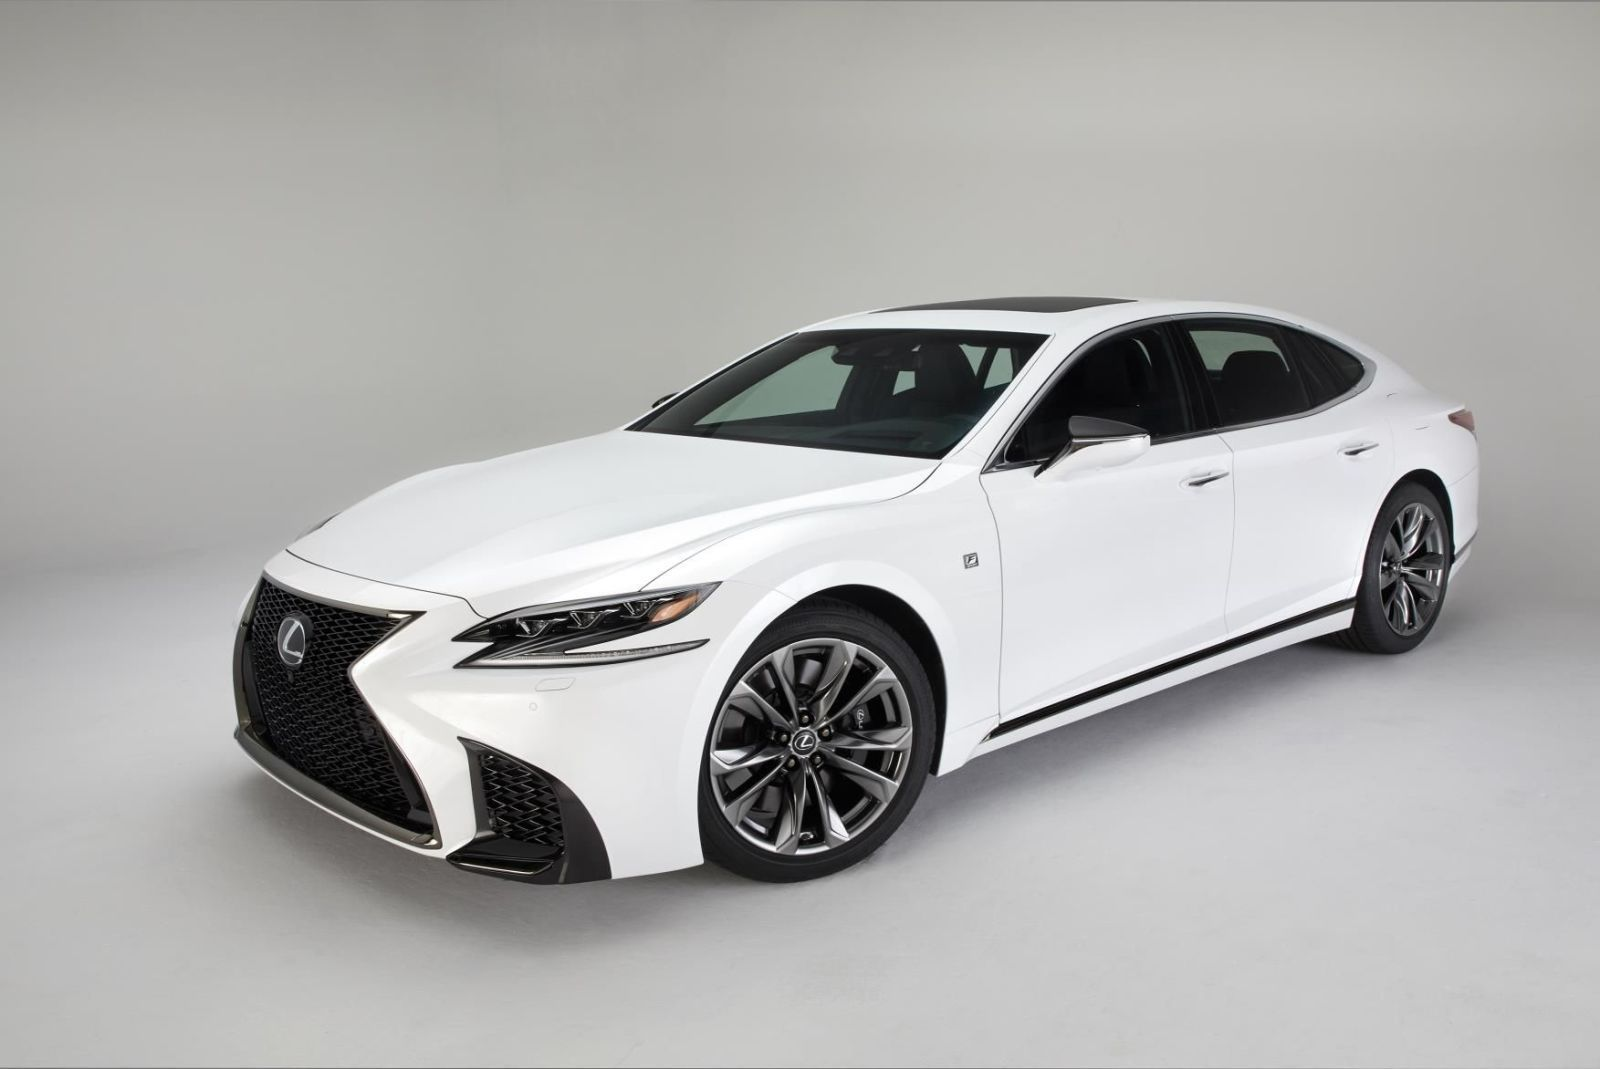 The Brand New Lexus Ls 500 F Sport Will Only Be Available With A Twin Turbo V6 Lexus Ls New Lexus Lexus Cars